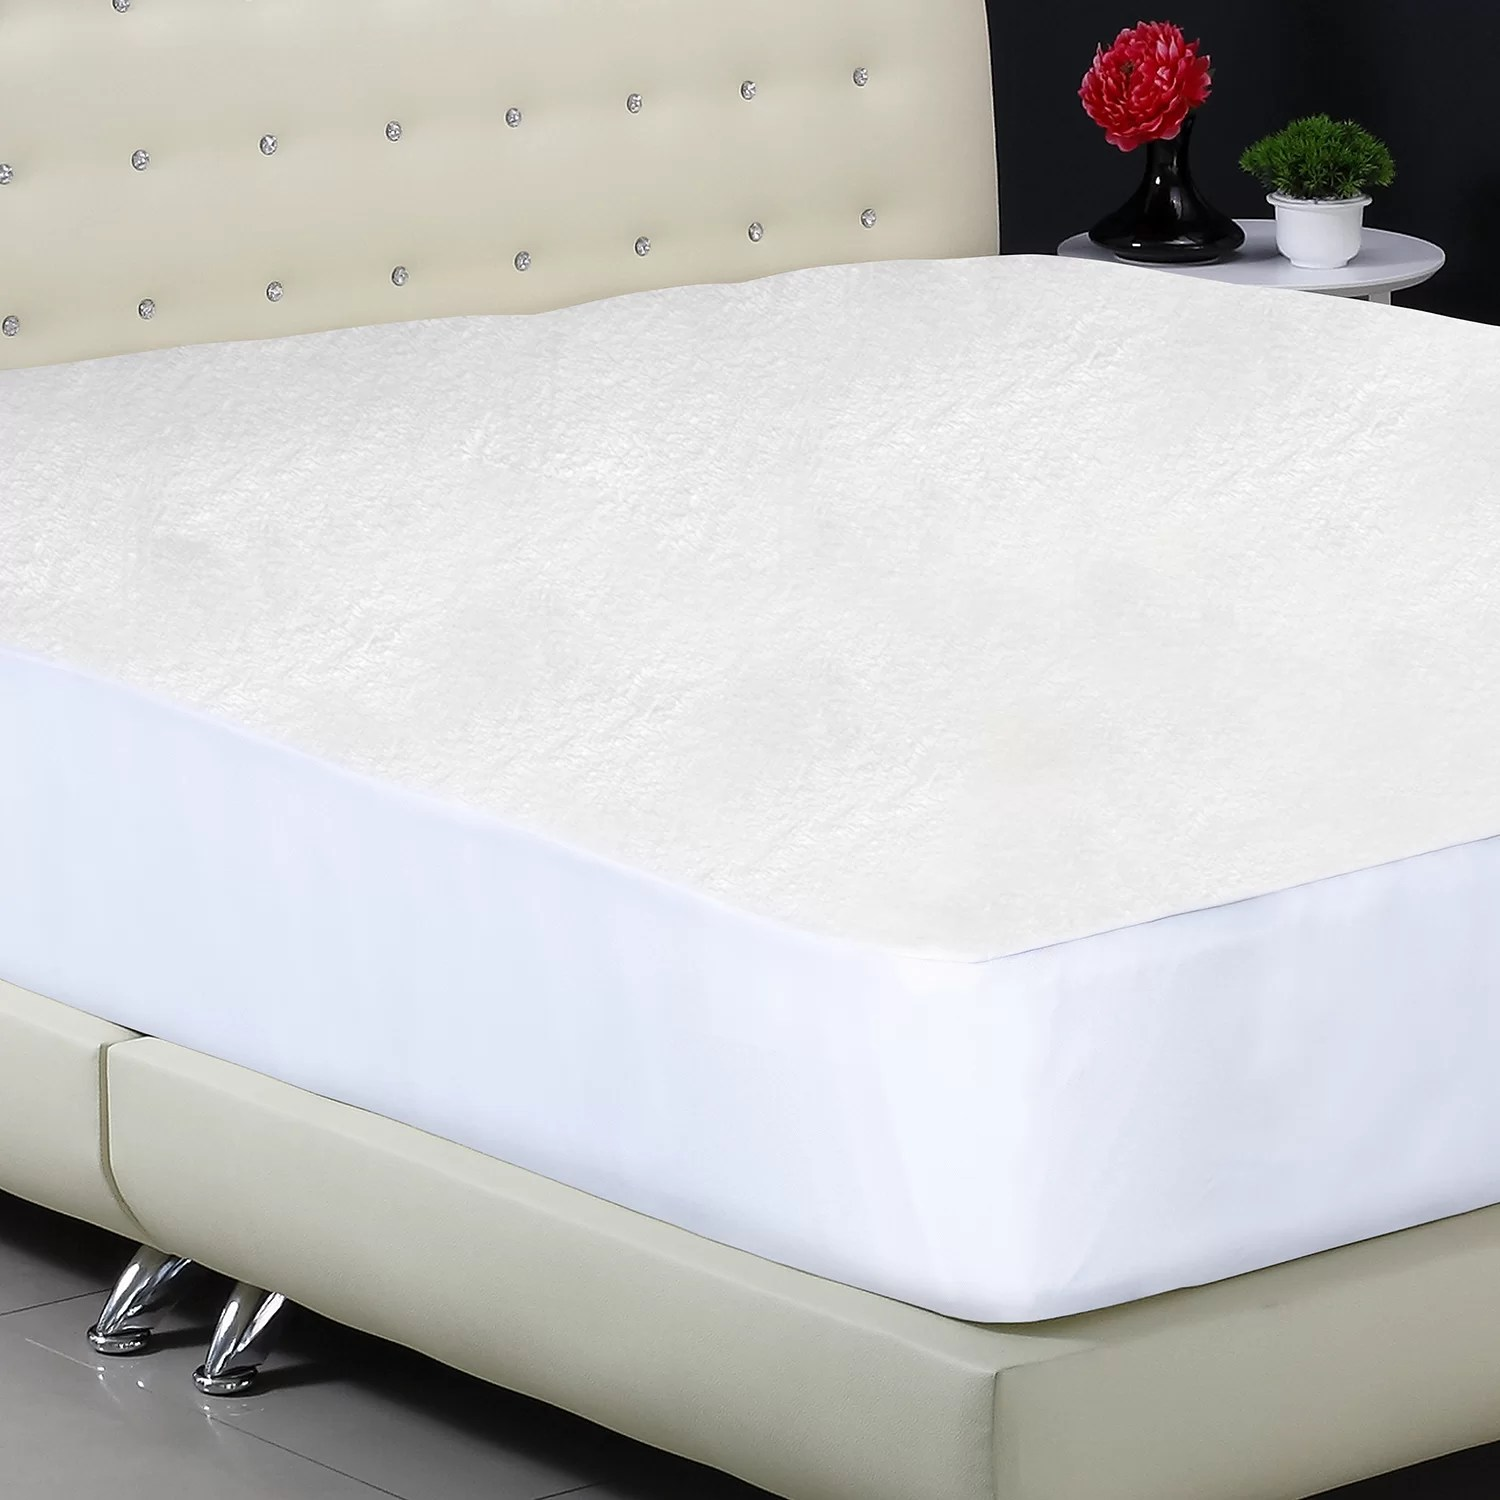 ProtectABed Premium Fitted Mattress Protector  Reviews